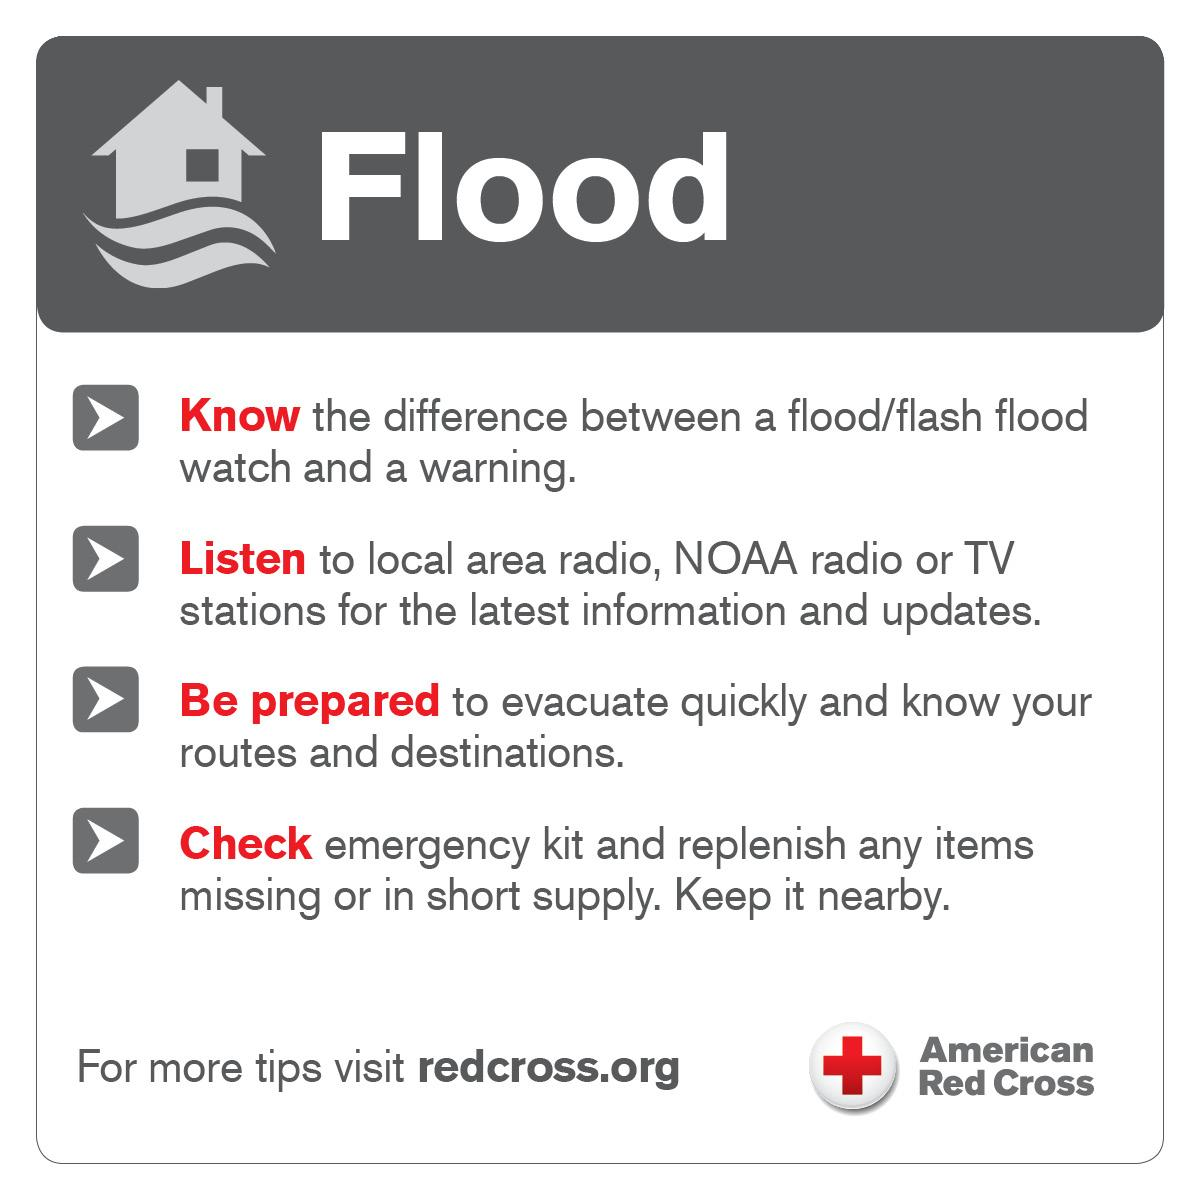 Some areas in #NJ are experiencing flooding due to heavy rains throughout the night. Never drive or walk through a flooded area! #Flood